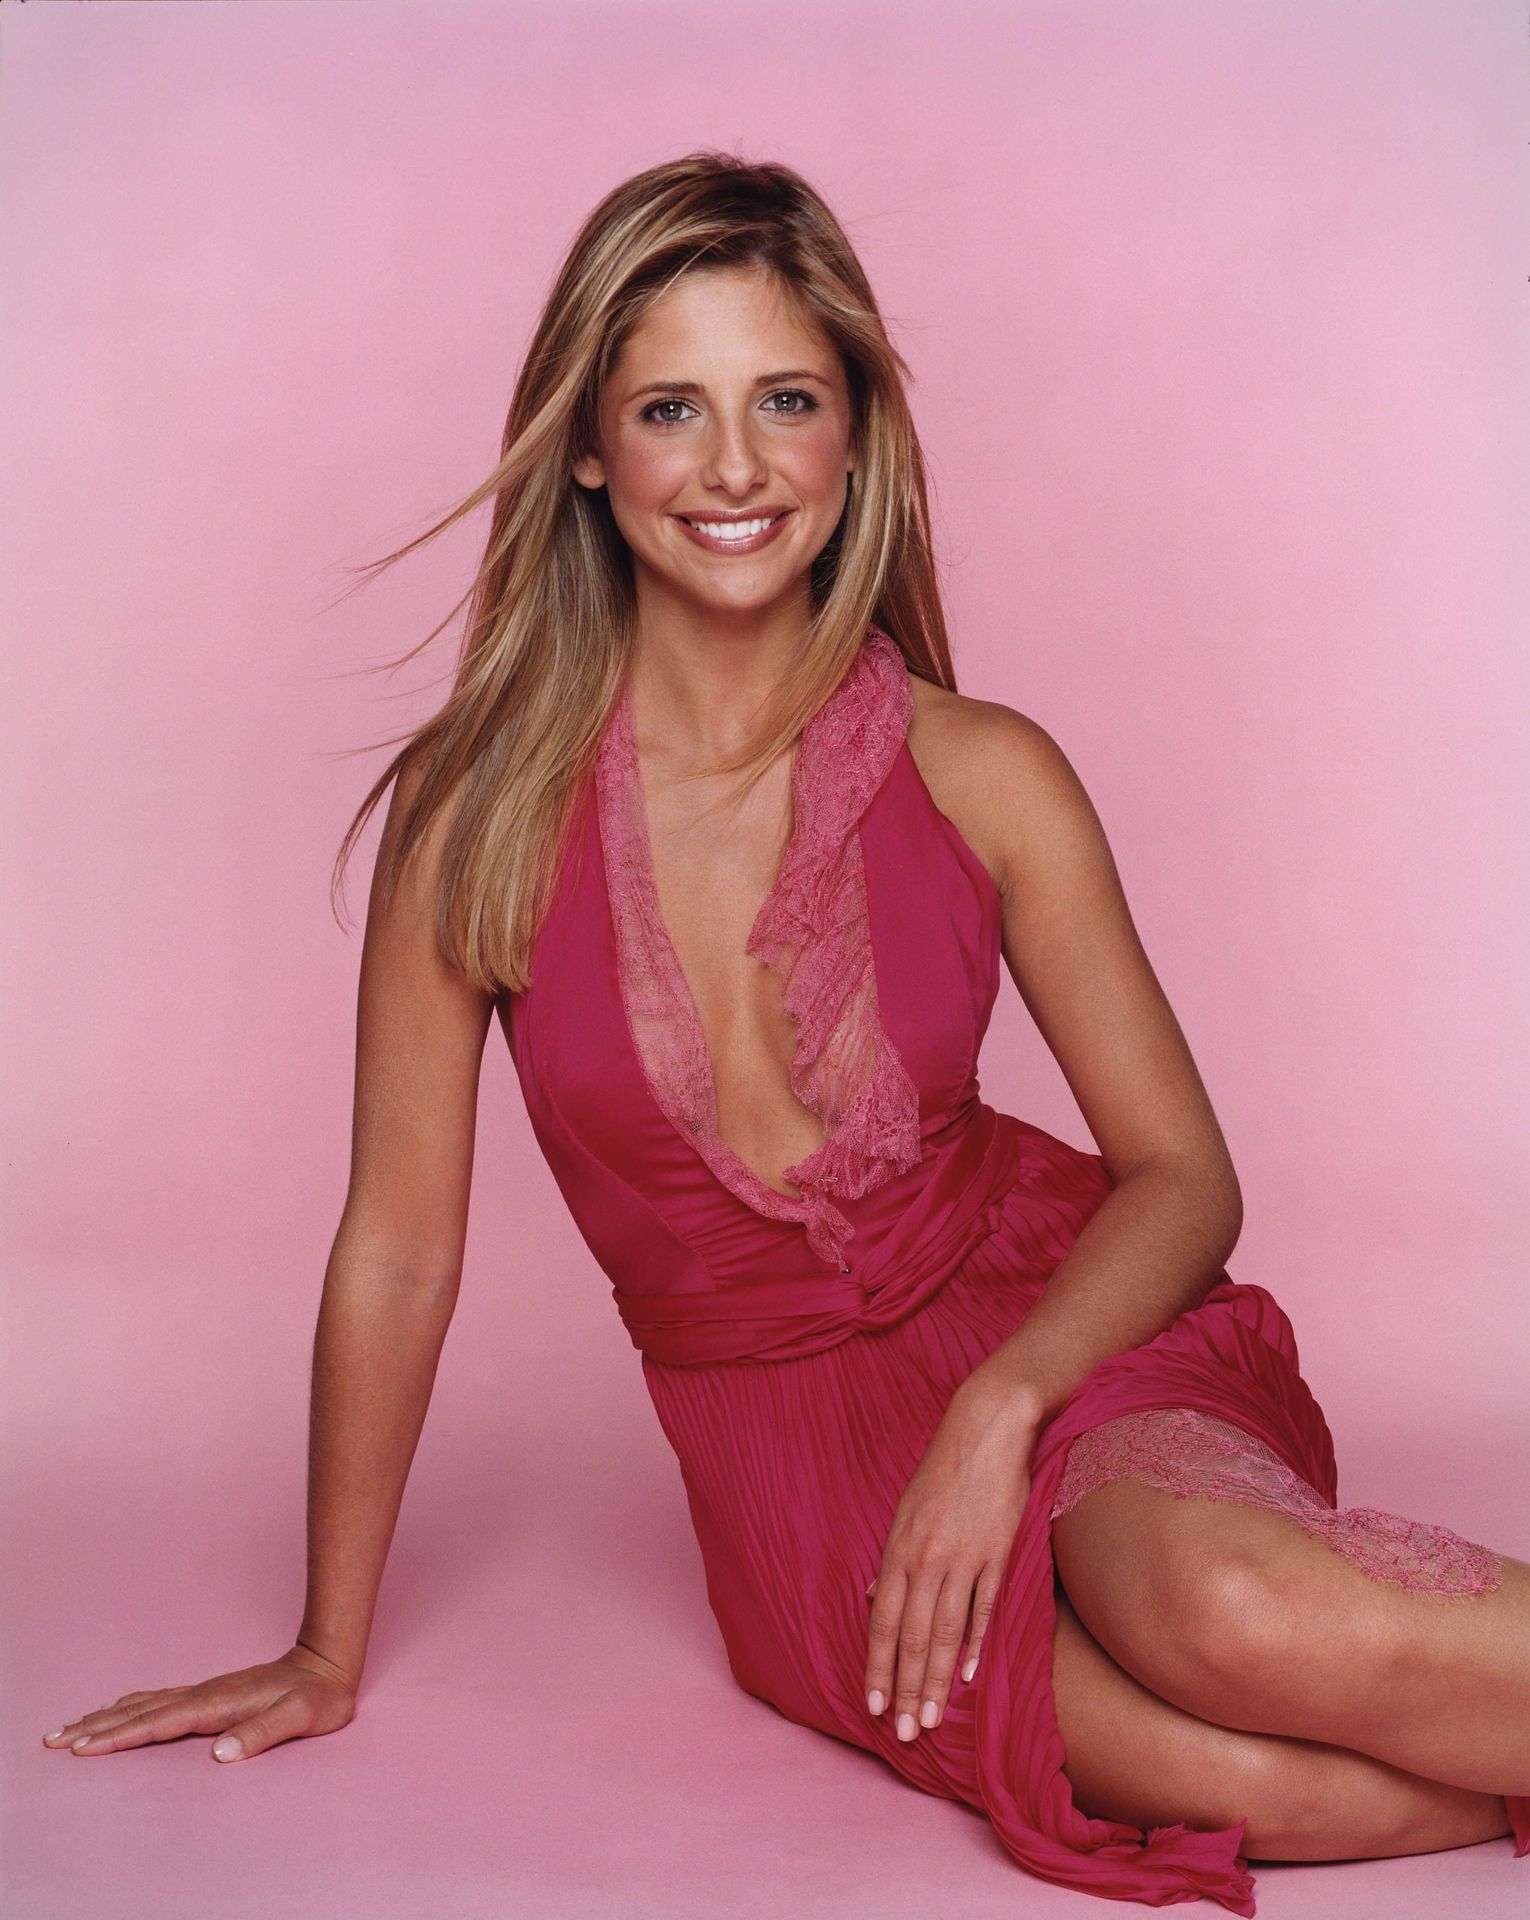 Sarah Michelle Gellar Actresses Photo 1078297 Fanpop